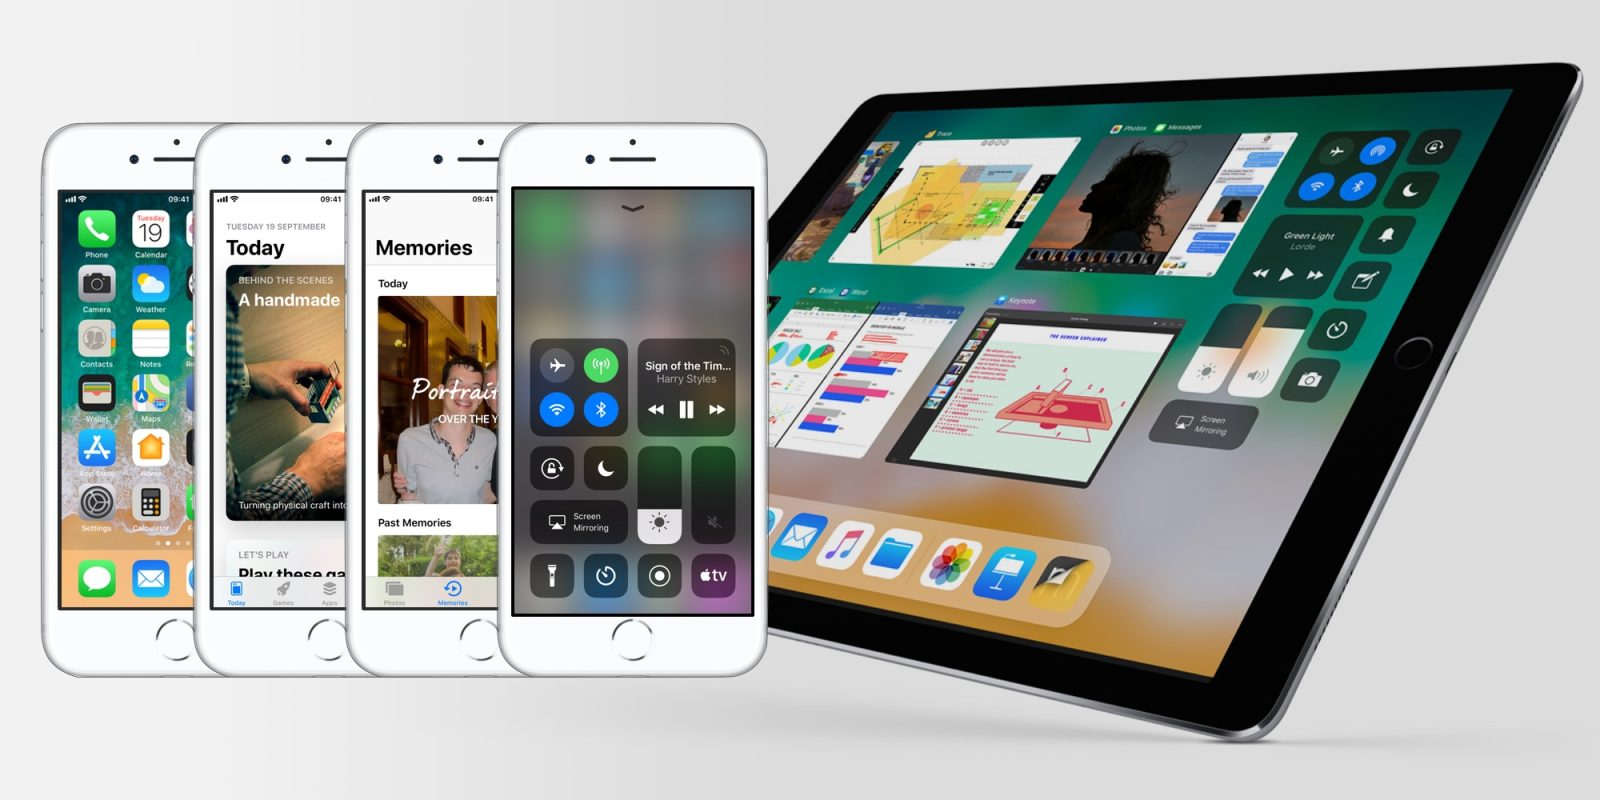 Apple releases iOS 11 0 2 for iPhone and iPad, including